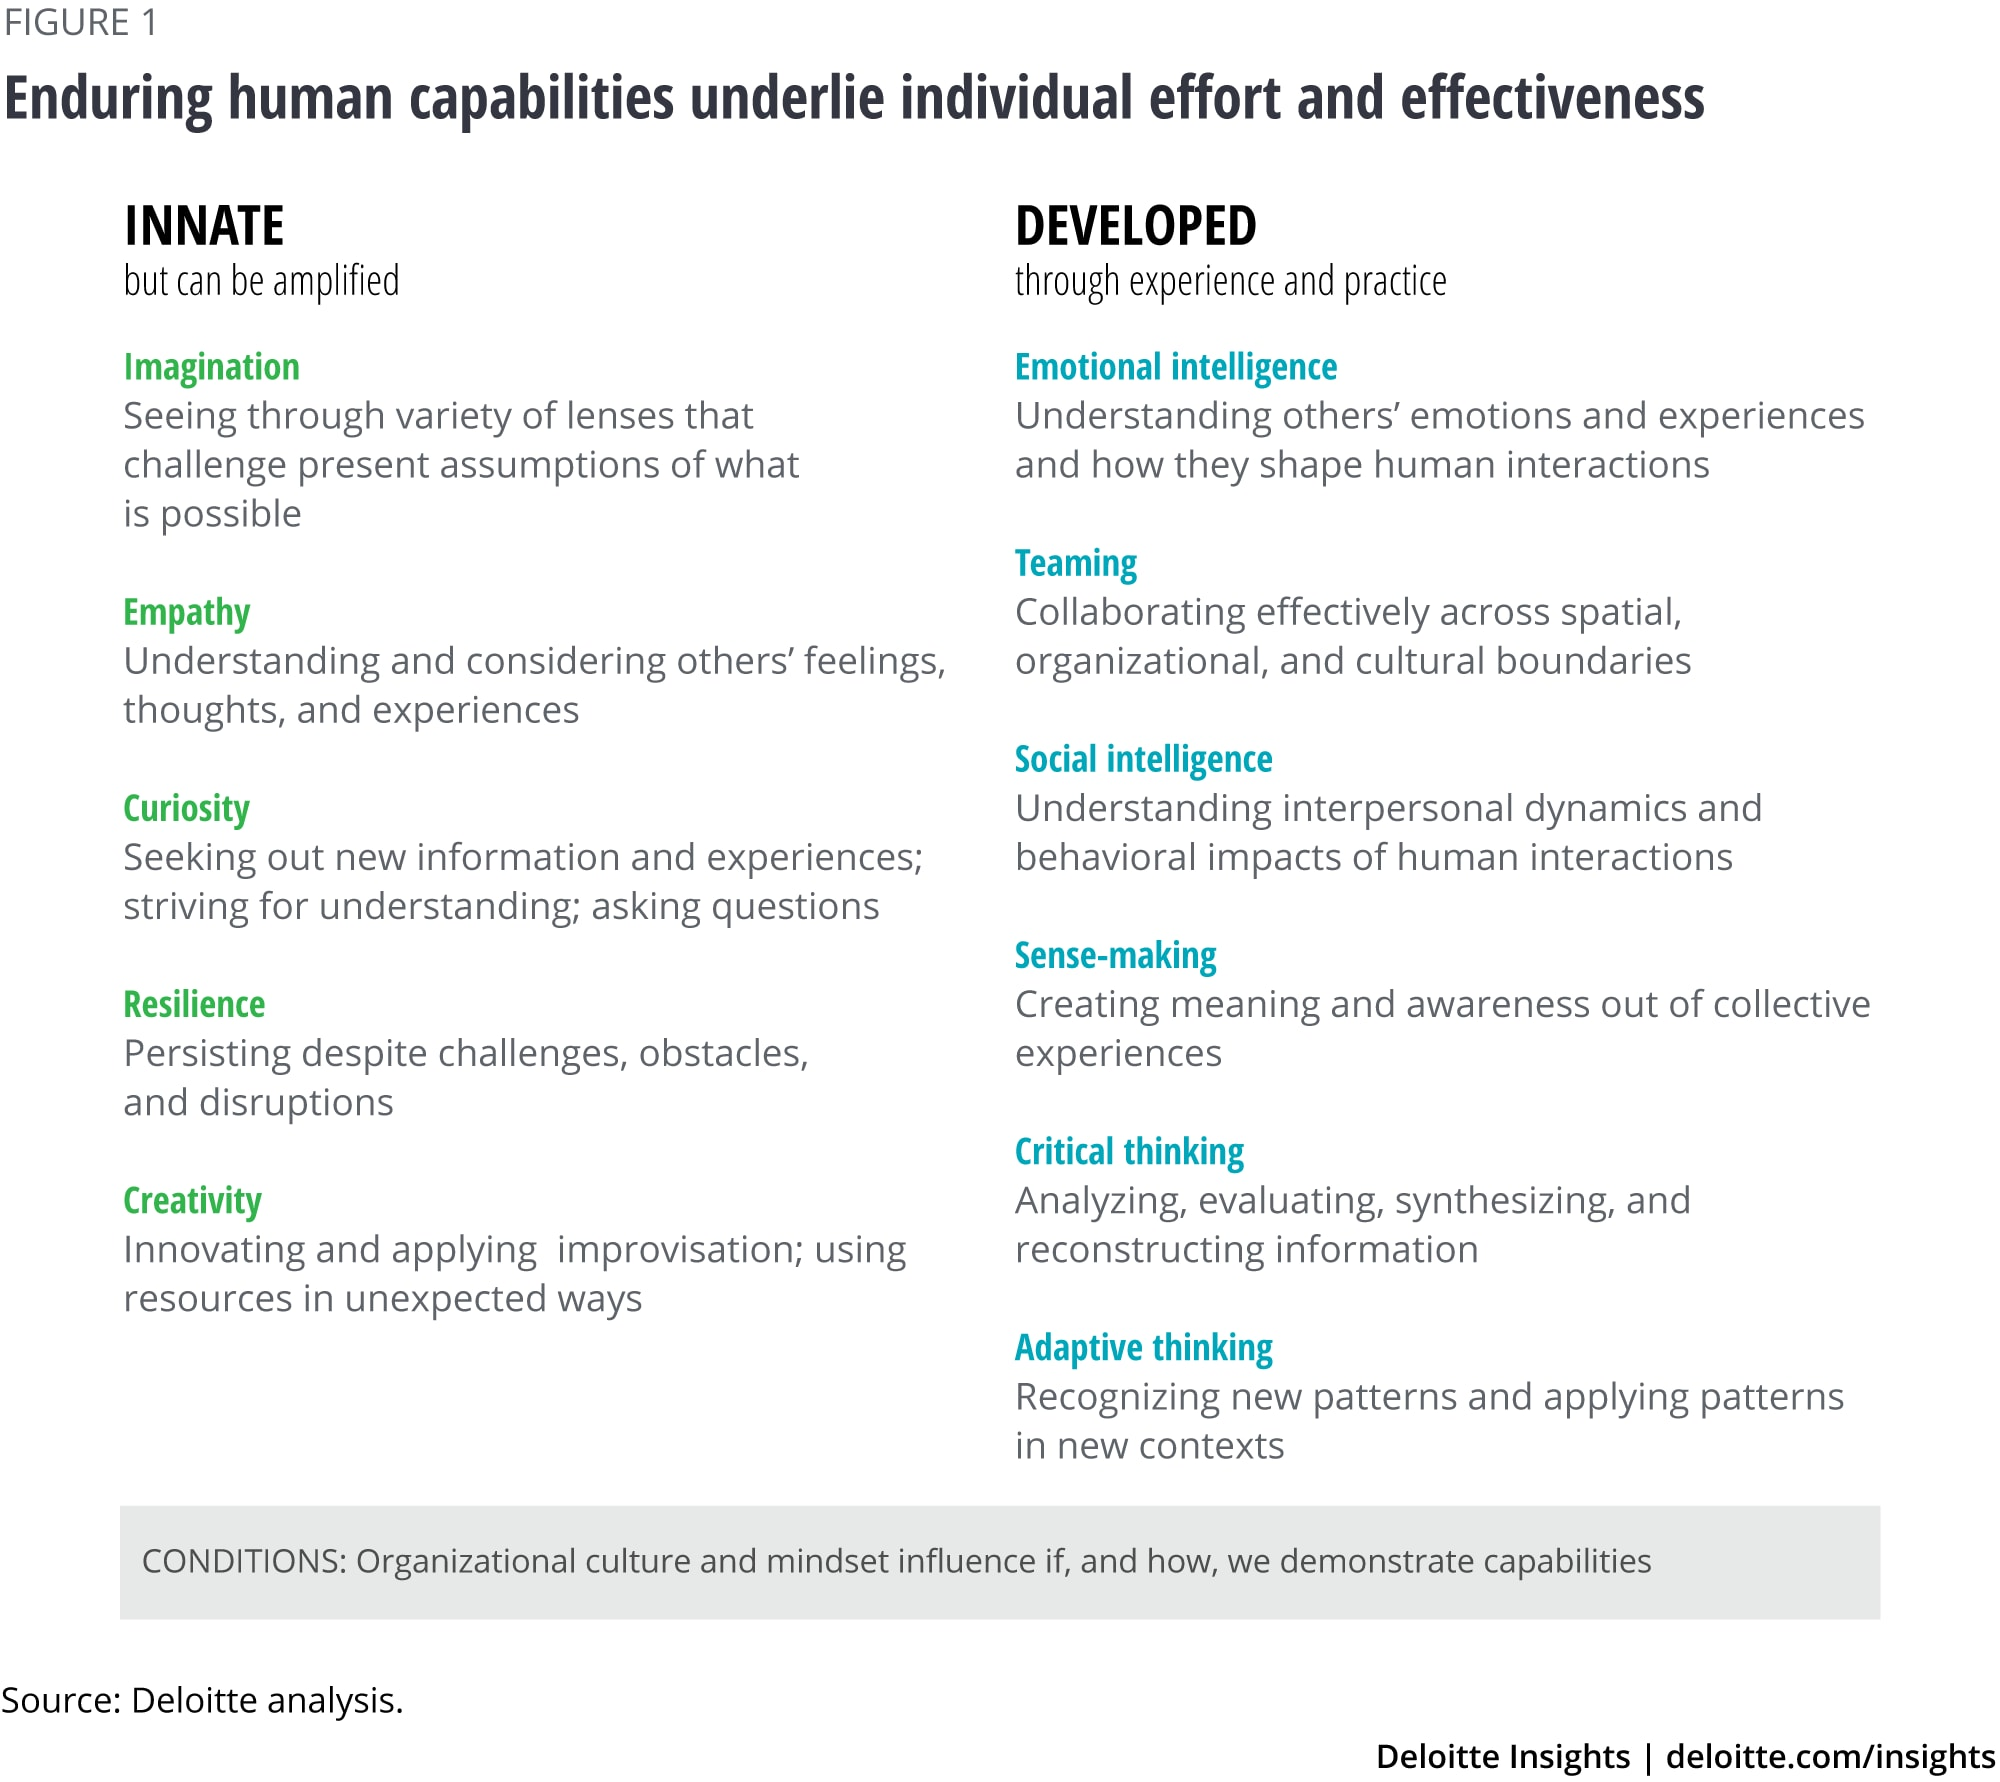 Enduring human capabilities underlie individual effort and effectiveness